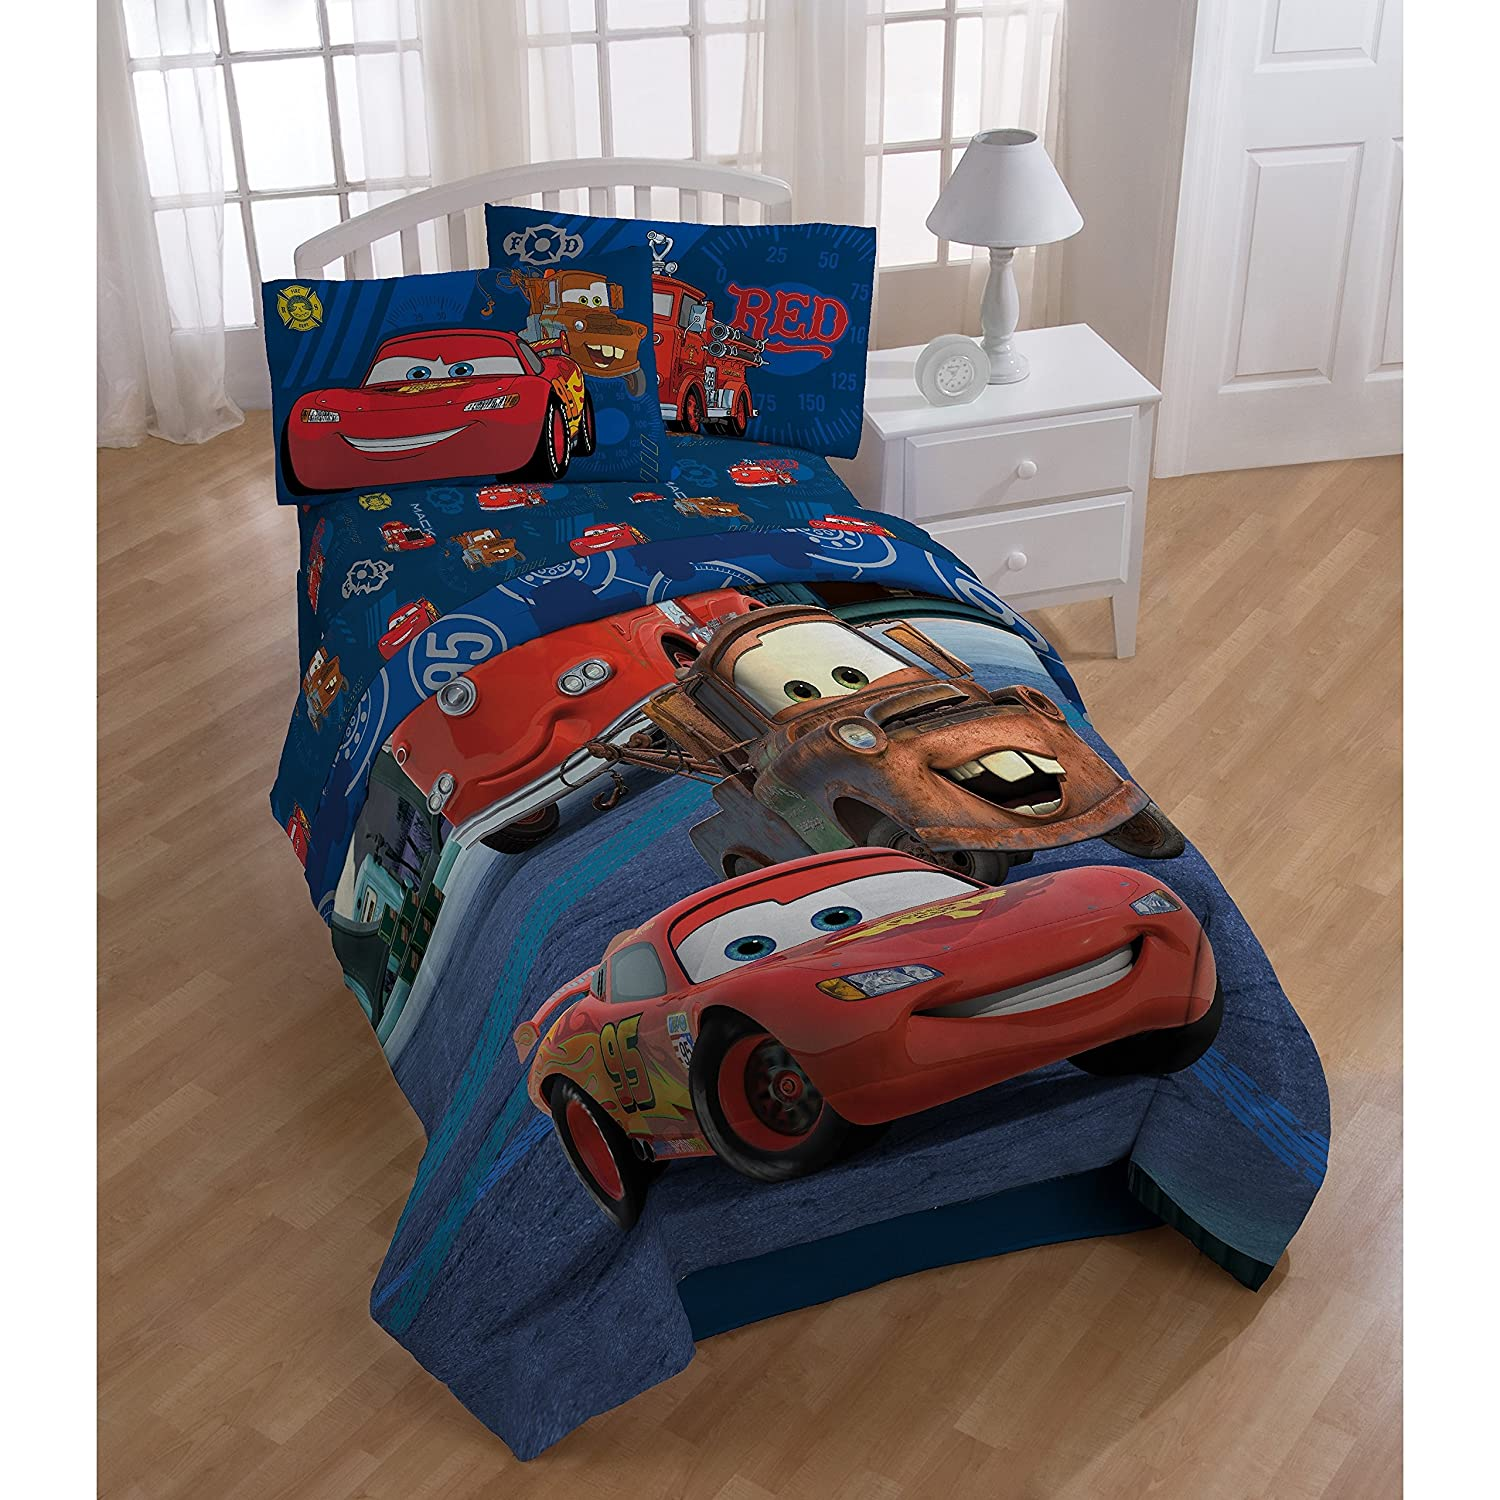 1 Piece Blue Red Disney Cars Hometown Movie Theme Comforter Twin Size, Beautiful Bold & Colorful Animated Cars Print, Fun Graphic Pattern Reversible Bedding, Soft Plush Durable Polyester, For Unisex